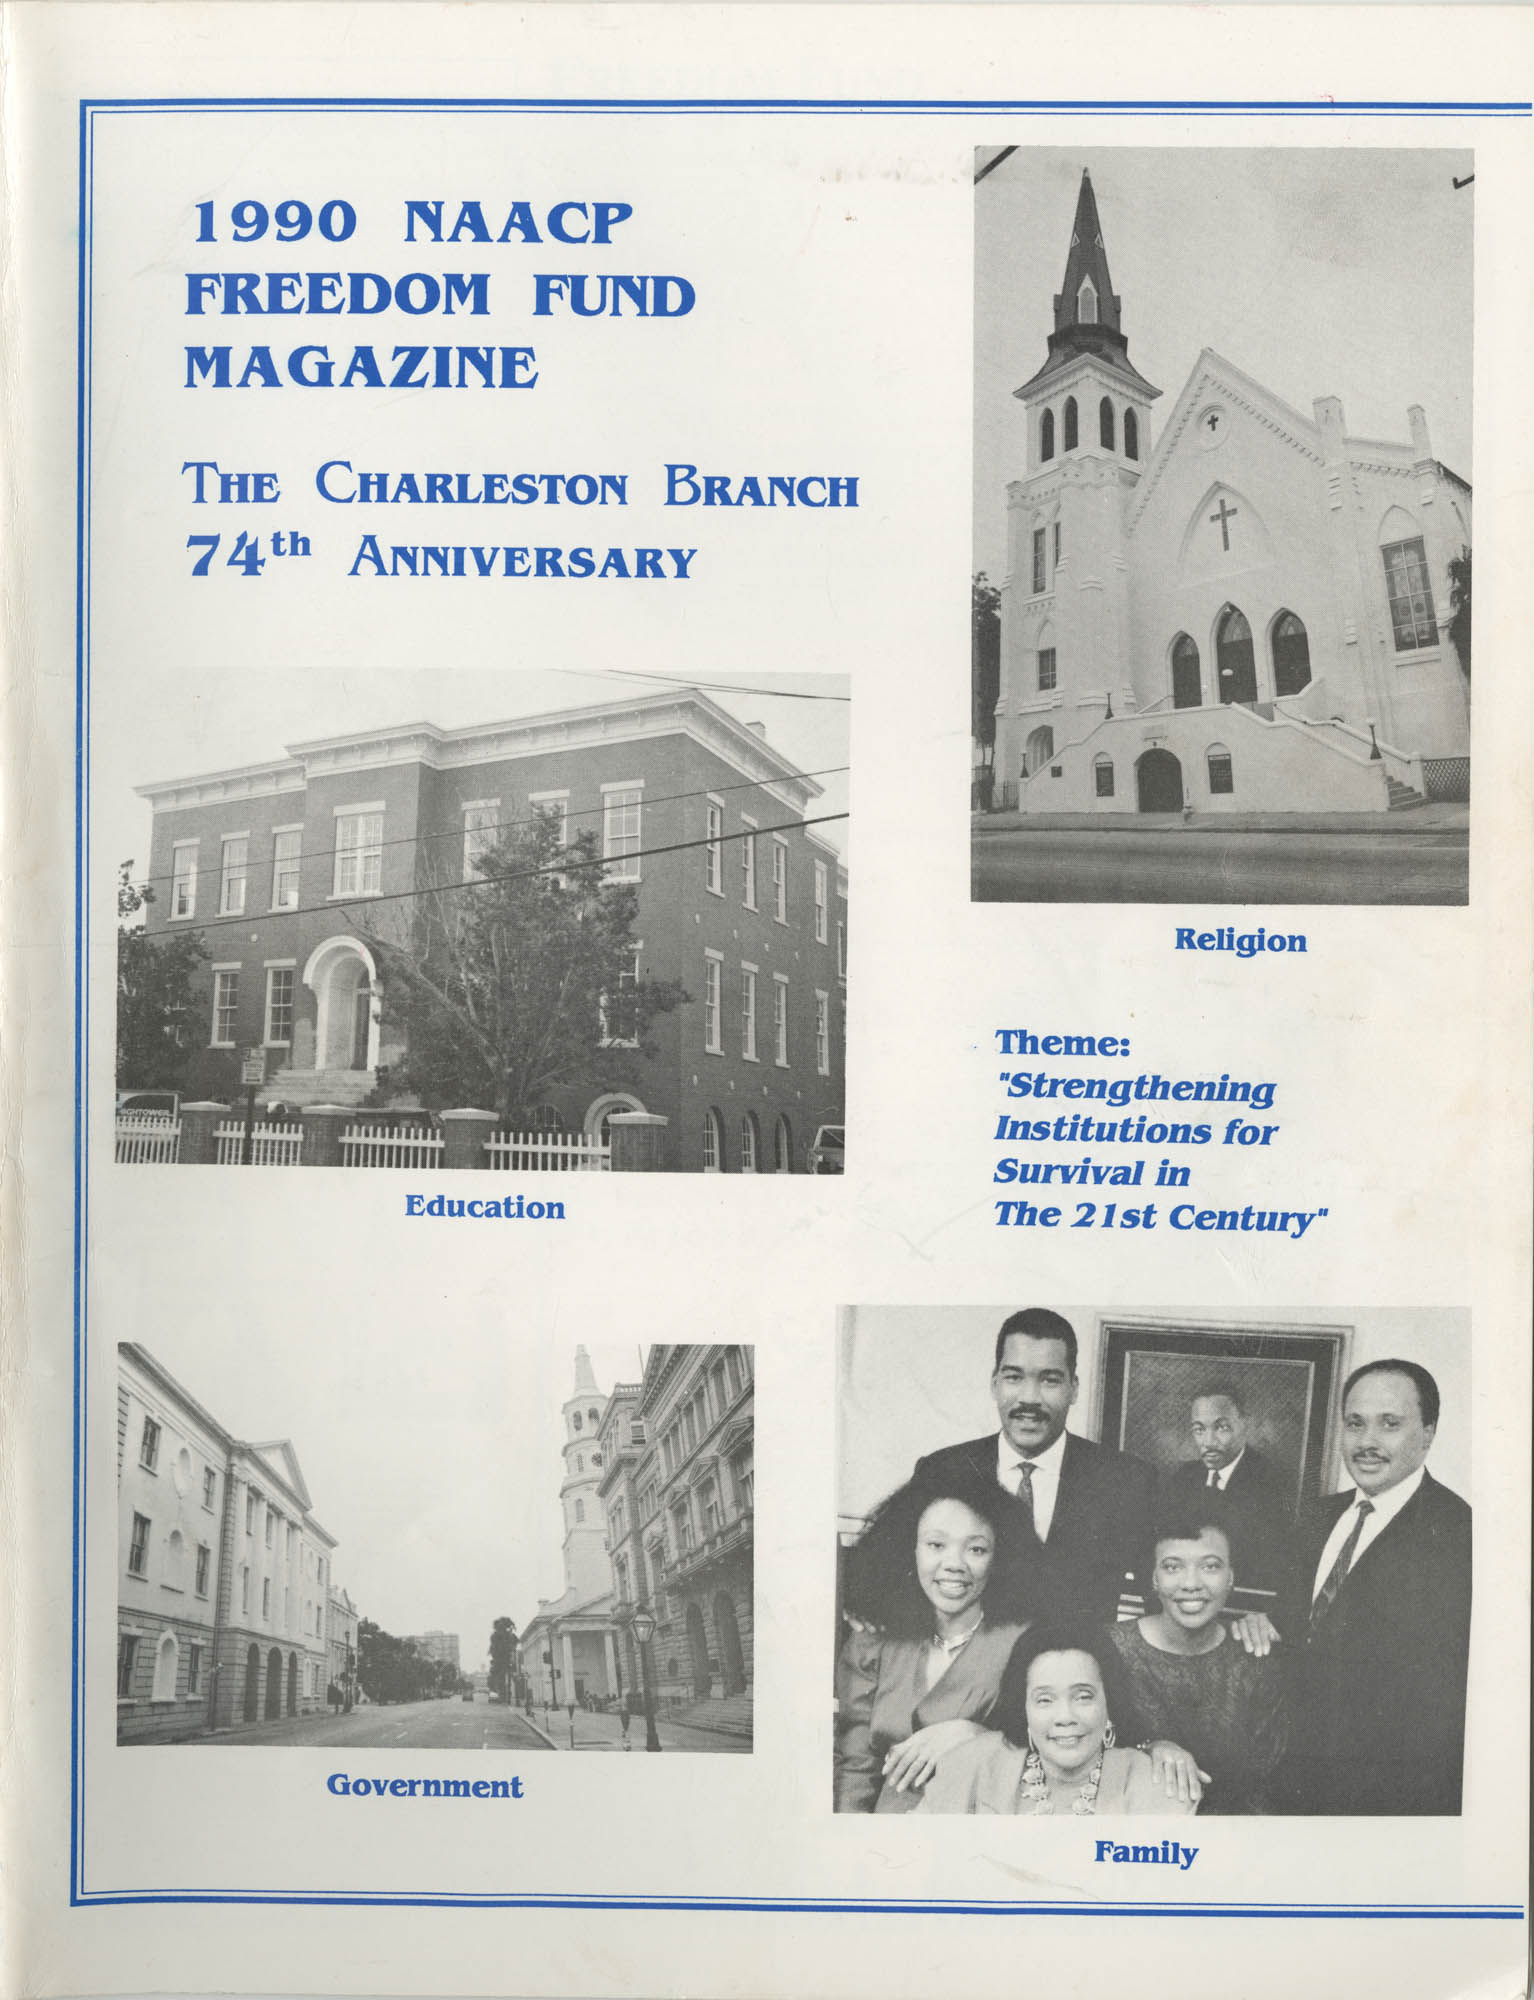 1990 NAACP Freedom Fund Magazine, Charleston Branch of the NAACP, 74th Anniversary